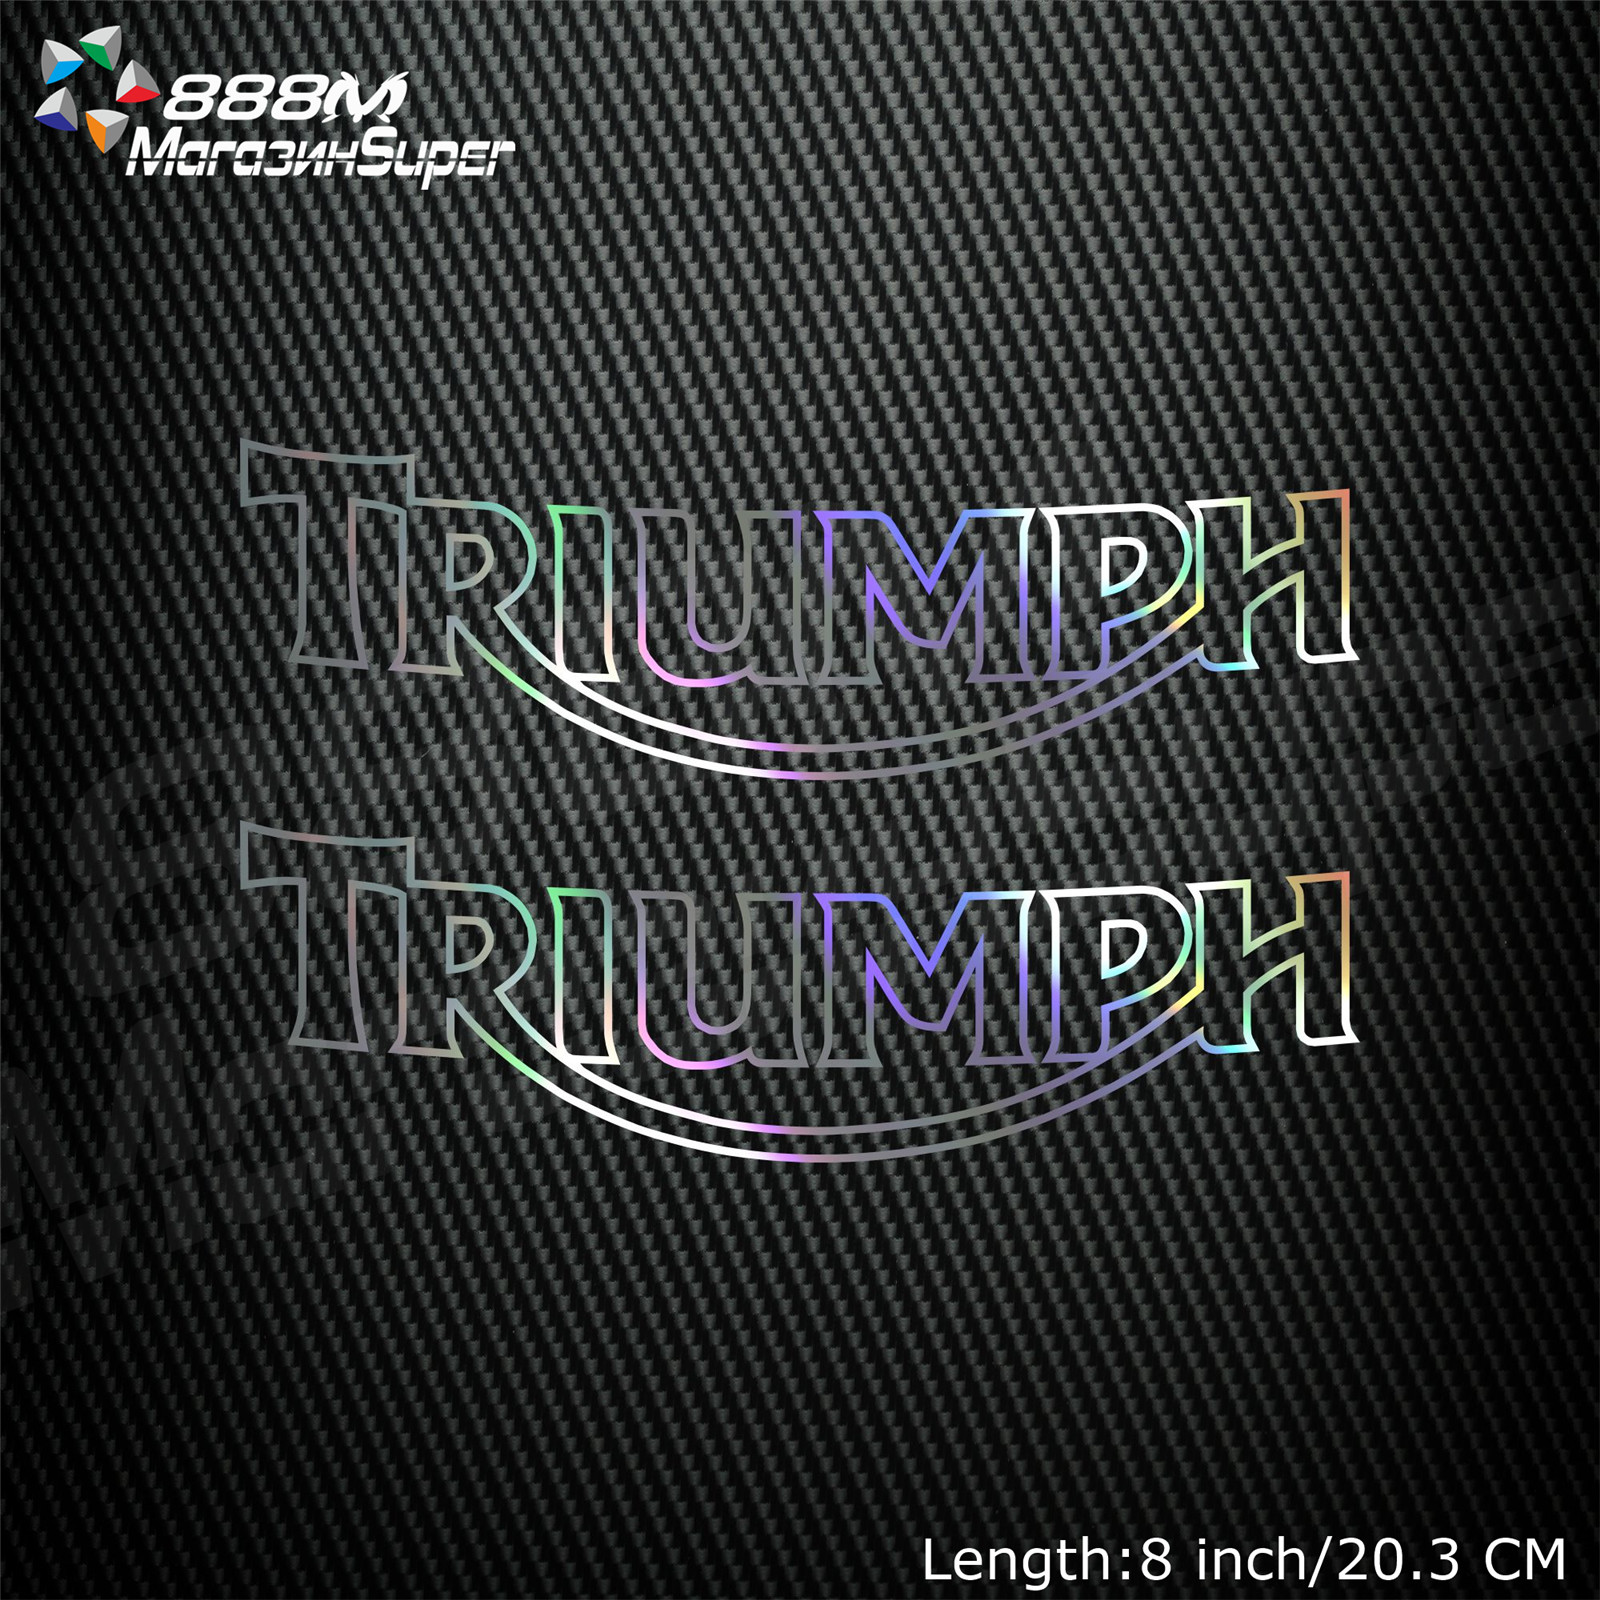 Motorcycle Reflective Laser Helmet Tank Pad Decoration Sticker Motorbike Decals For Triumph DAYTONA 675 955i TIGER 800 1050